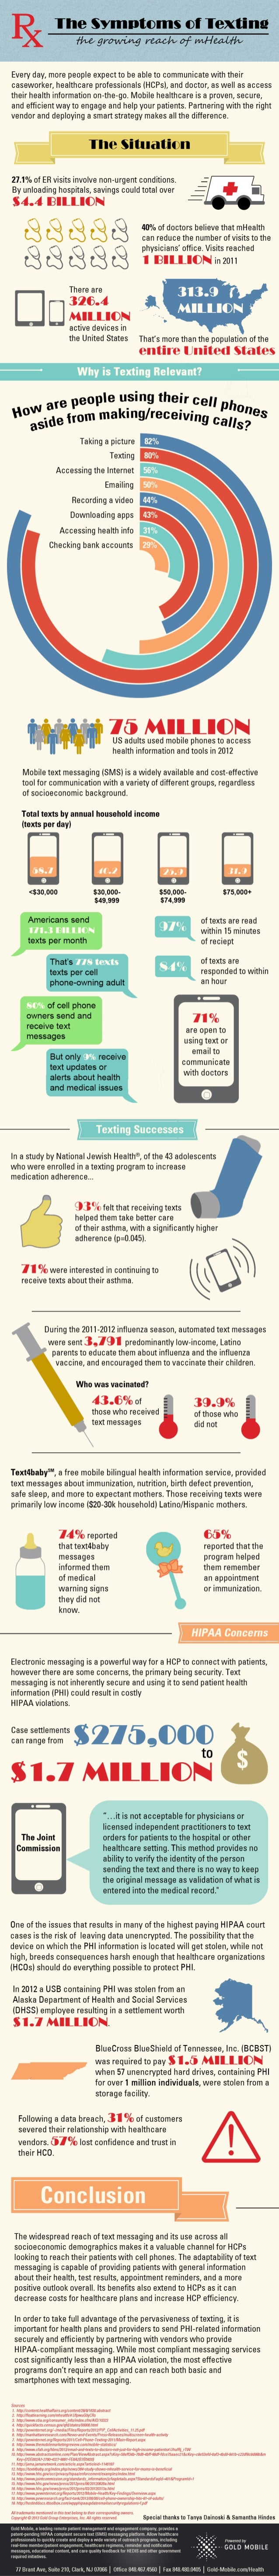 The Symptoms of Texting: the growing reach of mHealth | An infrographic by Gold Mobile